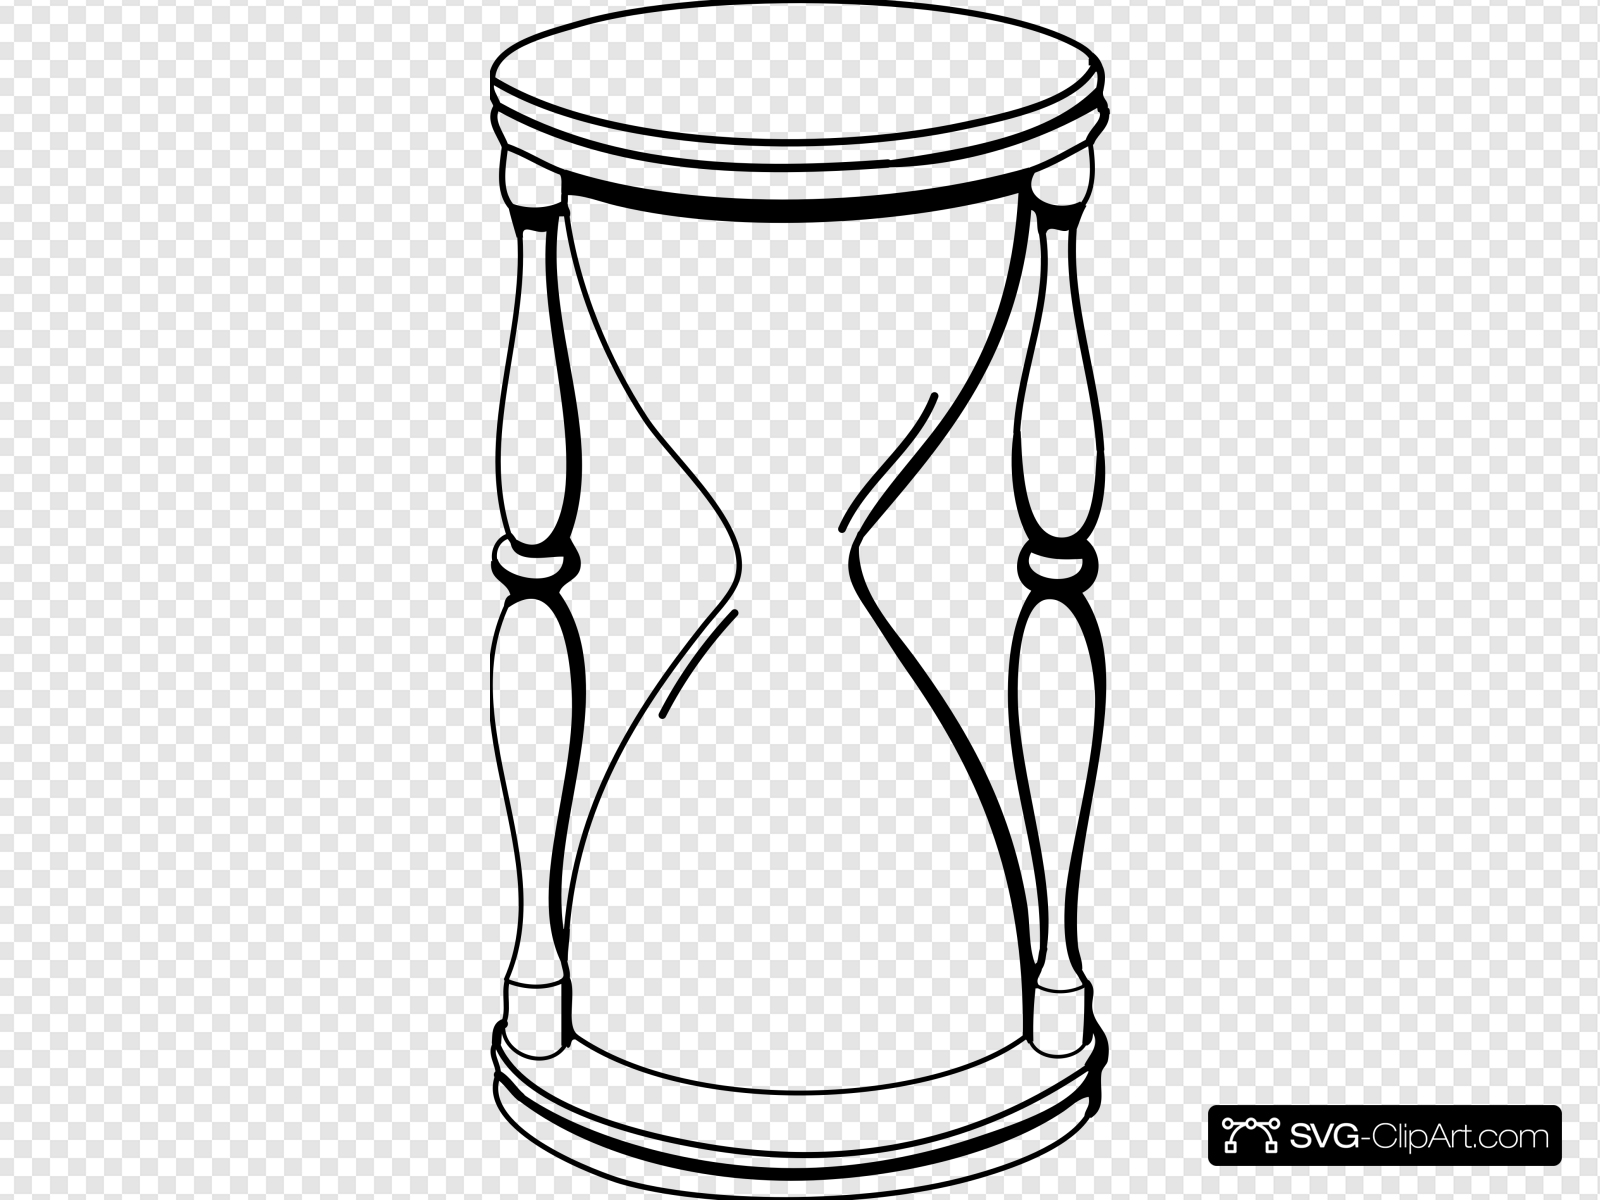 Hourglass clipart outline. Clip art icon and